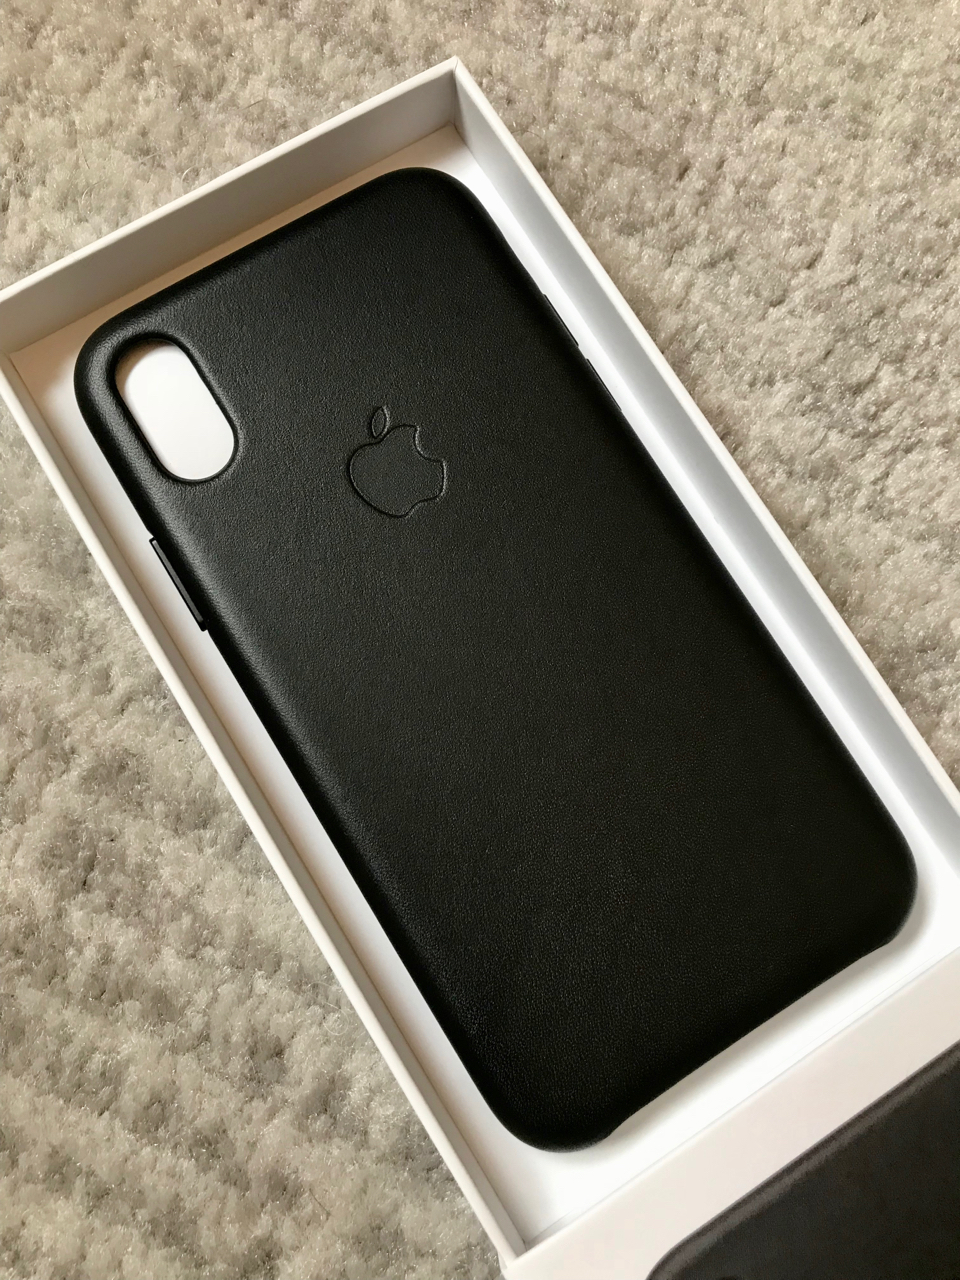 finest selection 61ebe 75040 iPhone X Leather Case arrived [Pics Inside]   MacRumors Forums